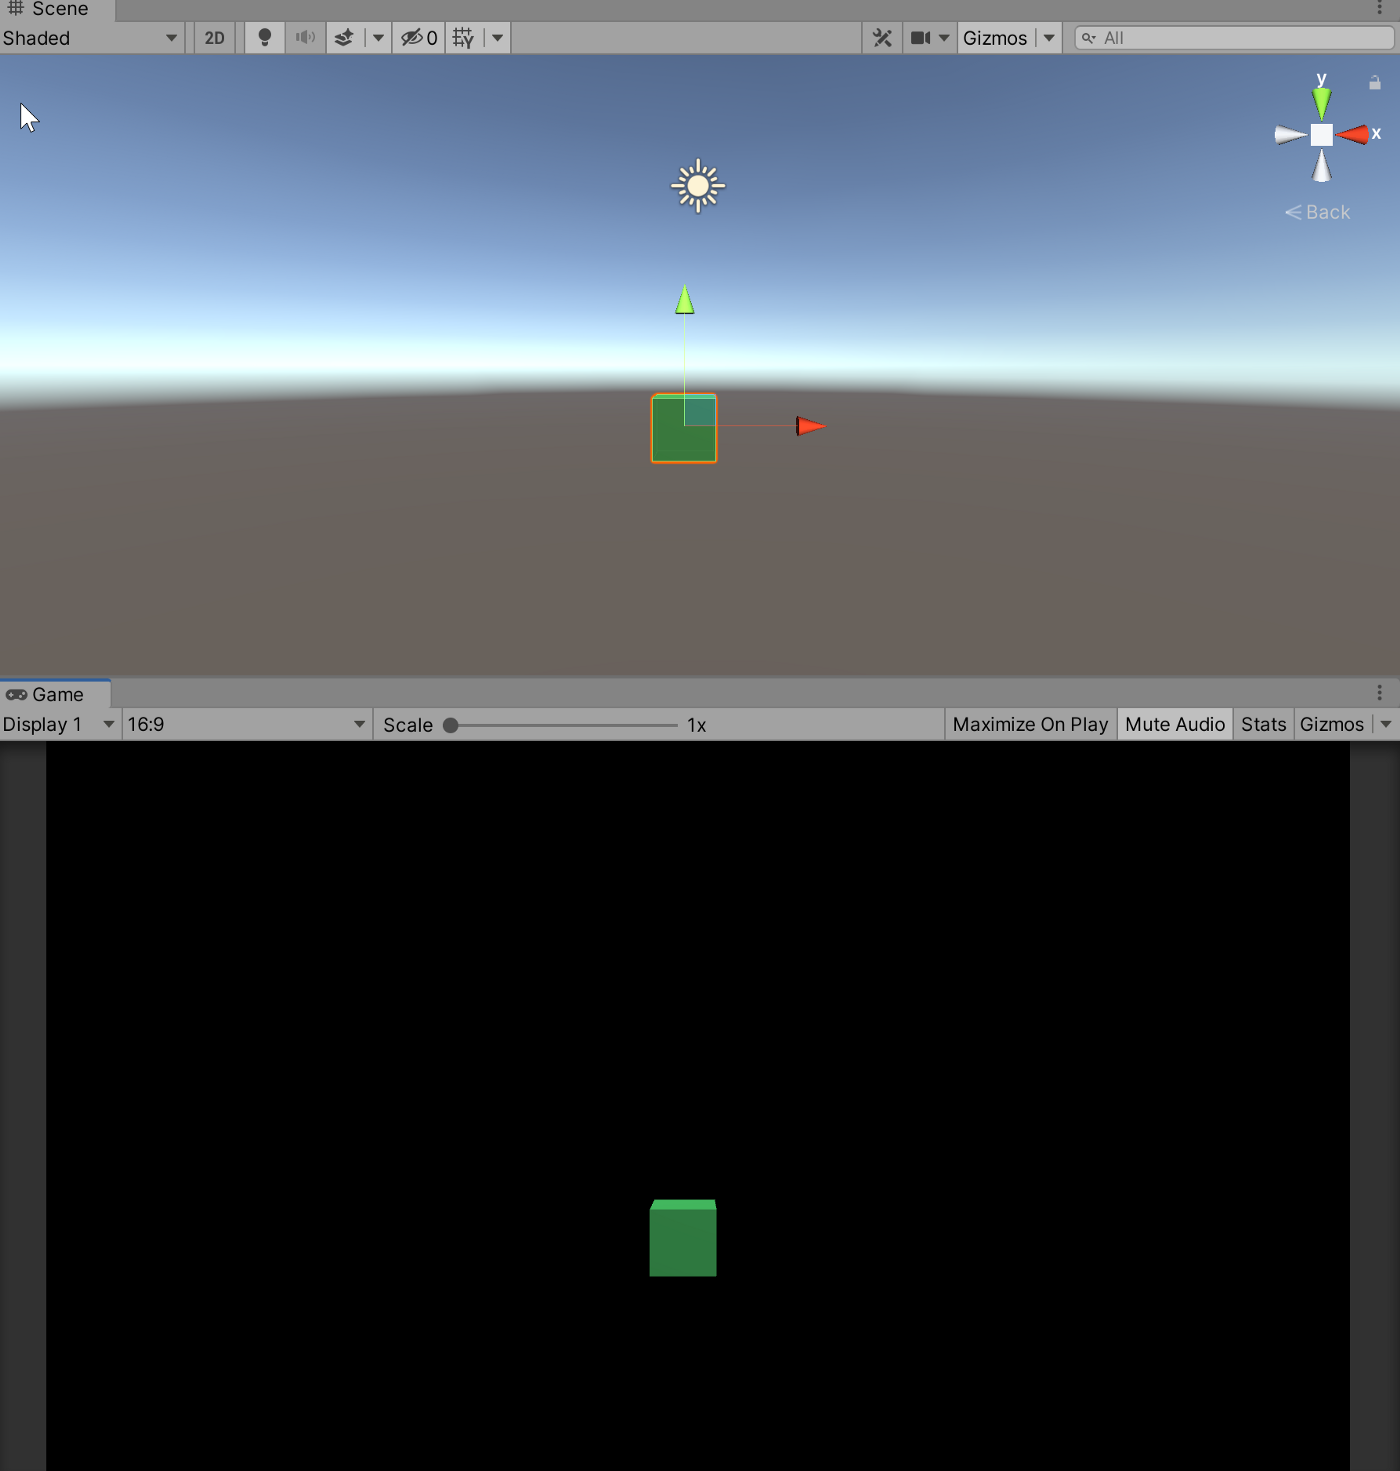 Unity scene and game windows, each showing a green cube.